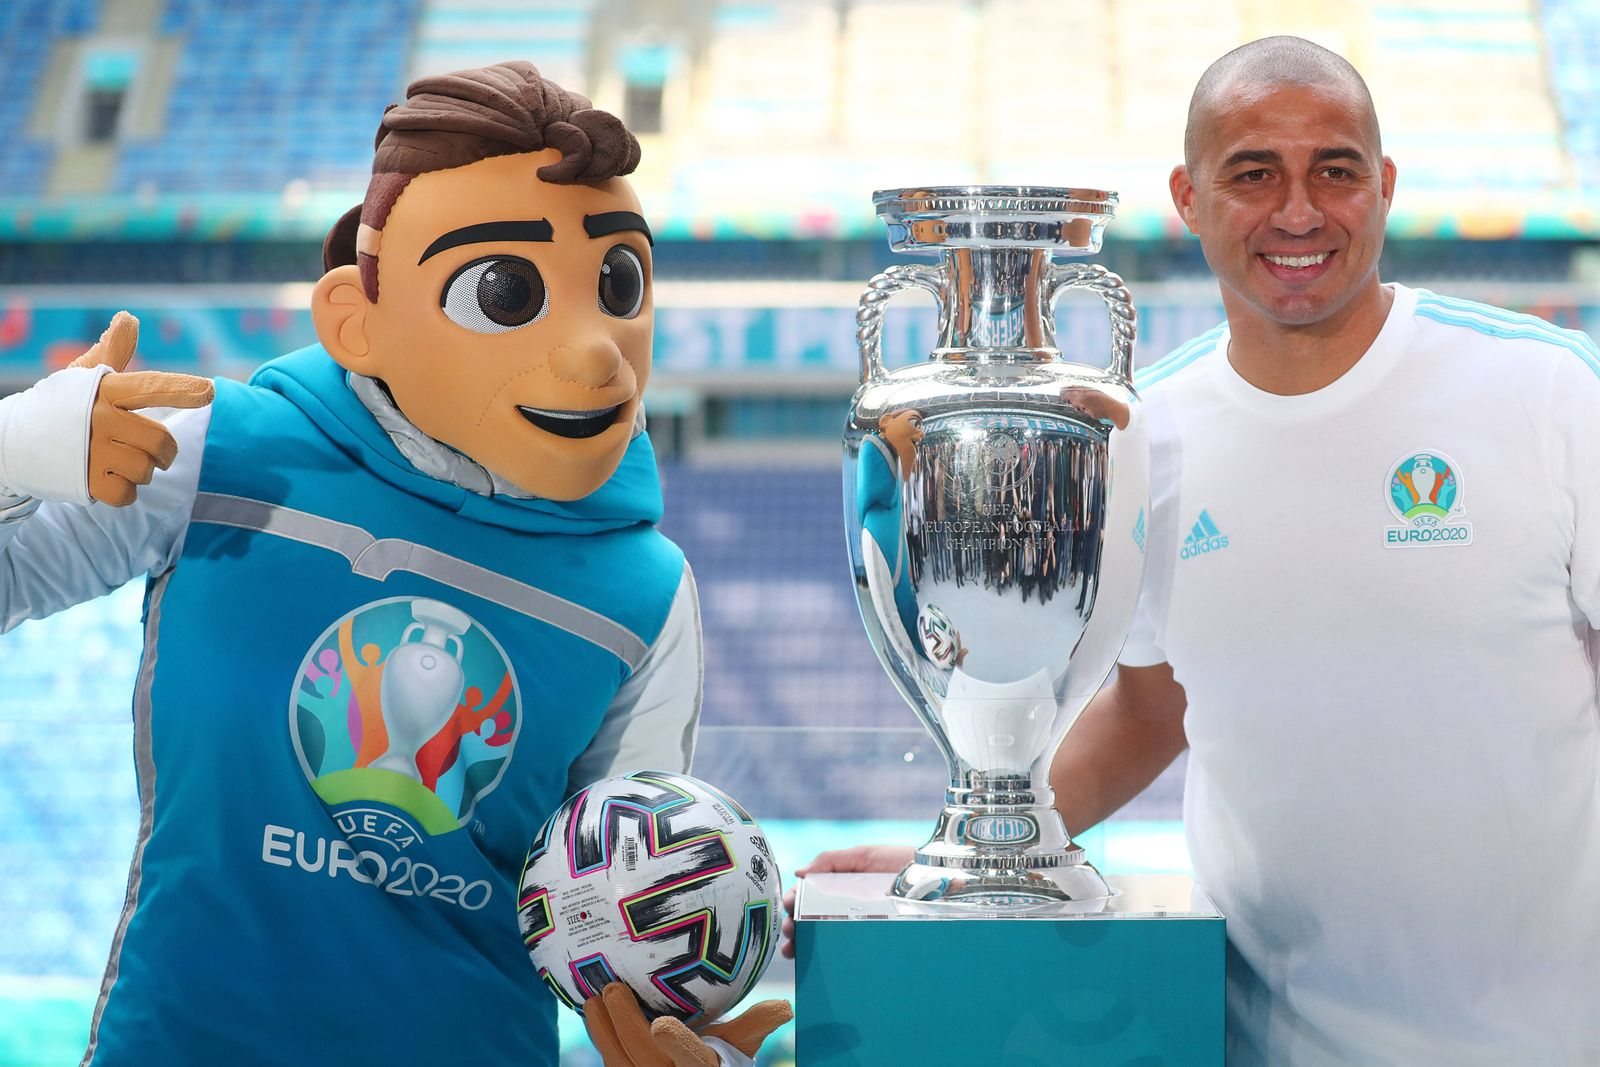 ST PETERSBURG, RUSSIA MAY 22, 2021: A costumed character representing Skillzy, the official Euro 2020 mascot (L), and